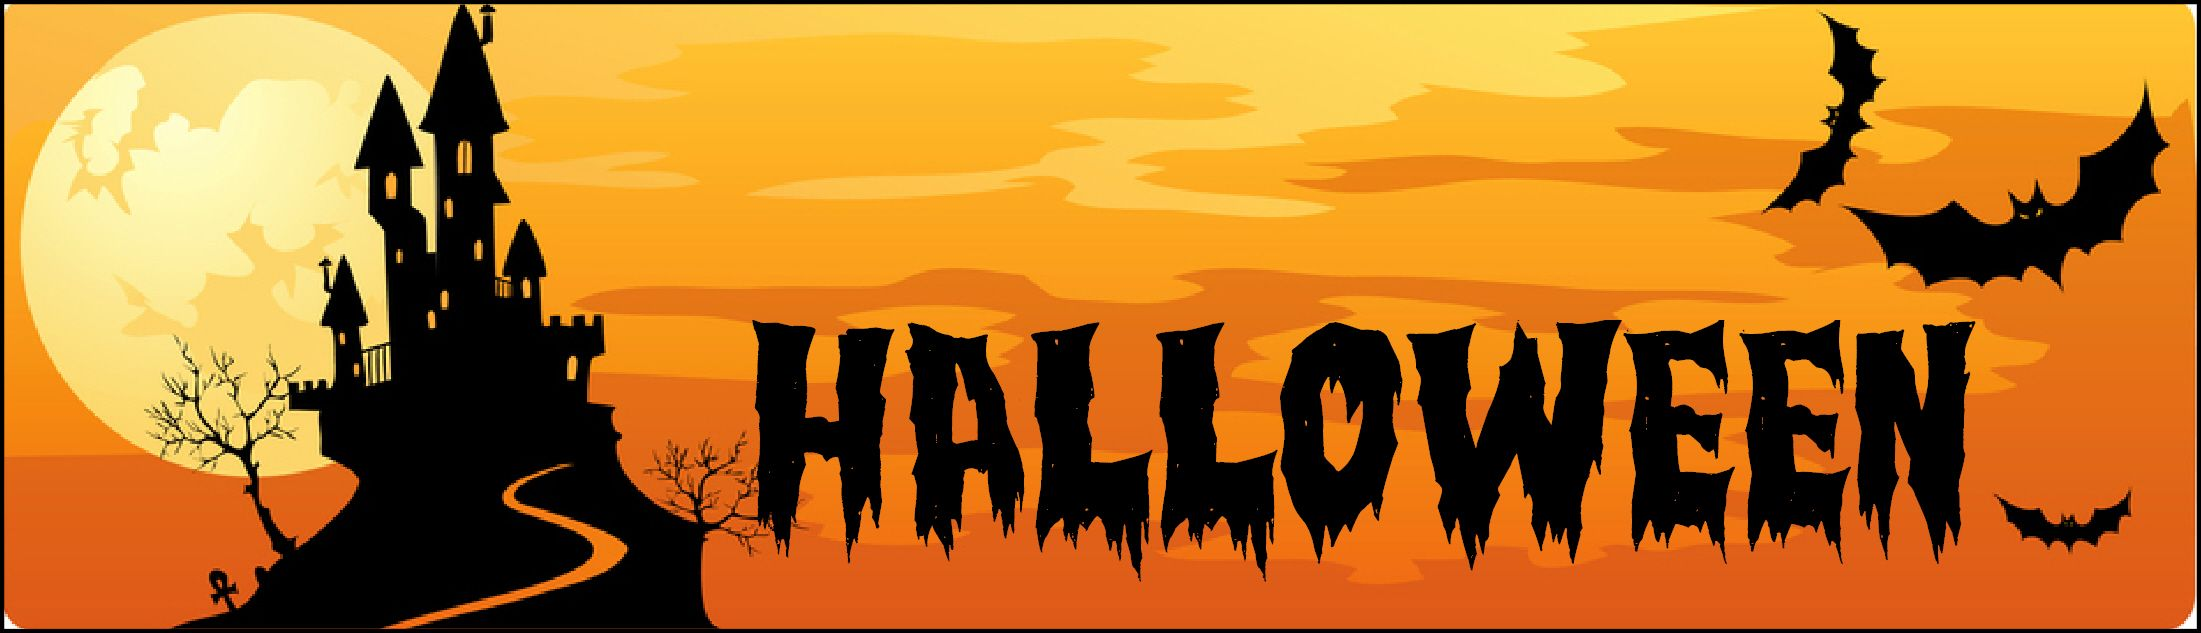 halloween-banner | Kuulpeeps - Ghana Campus News and Lifestyle ...